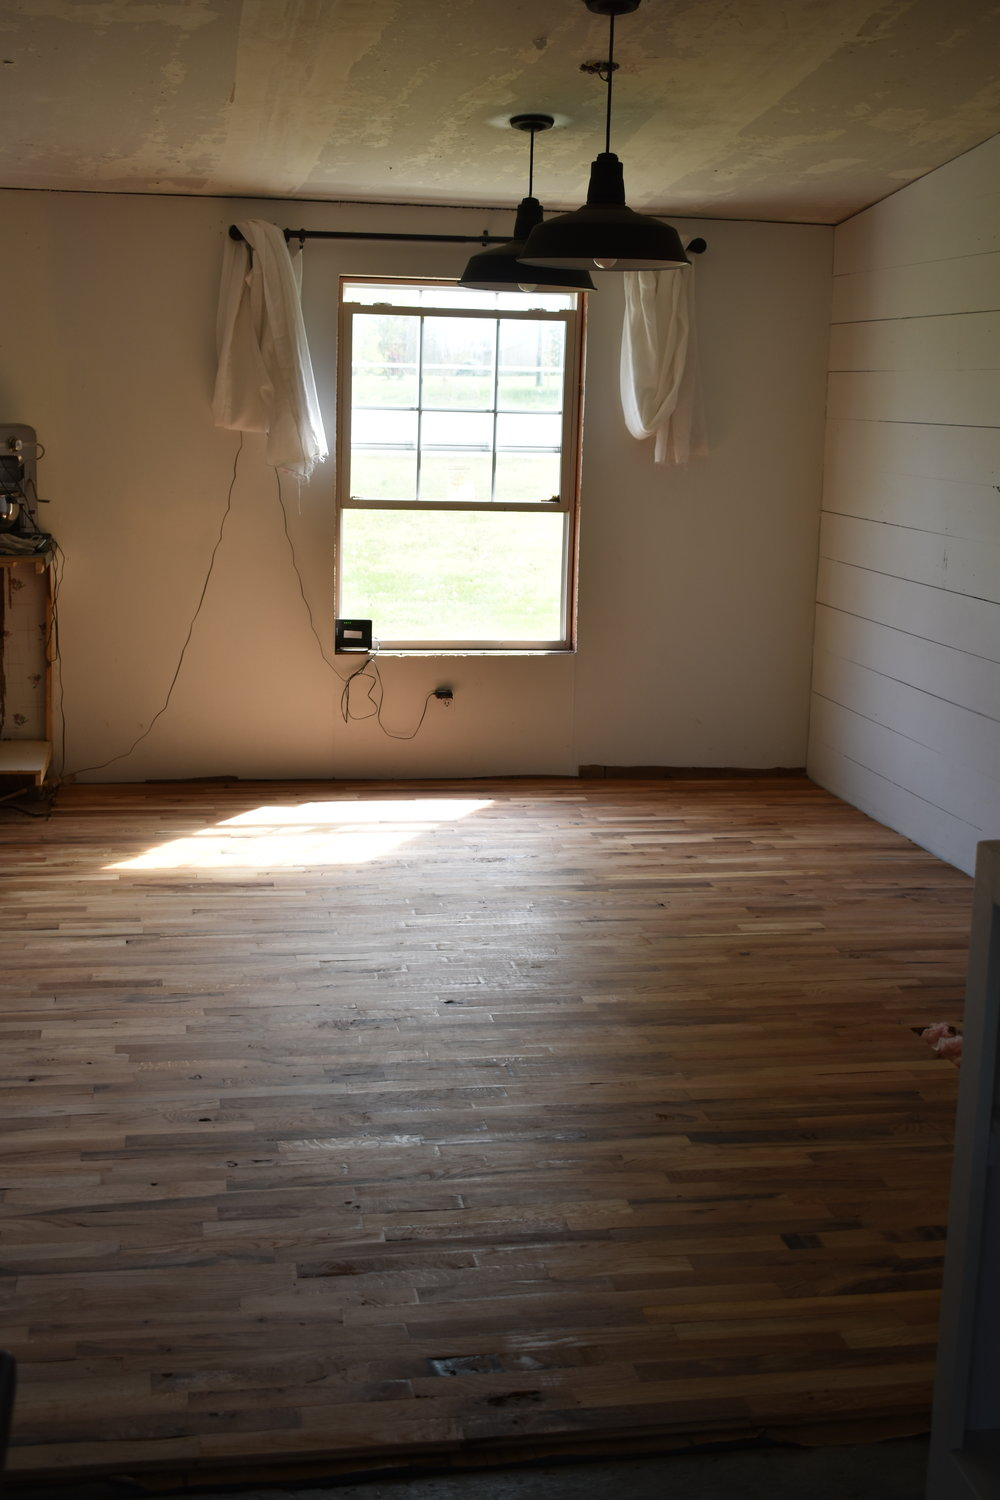 Remodeling a Double Wide Mobile Home on a Budget and Putting in Hardwood Floors | Rocky Hedge Farm